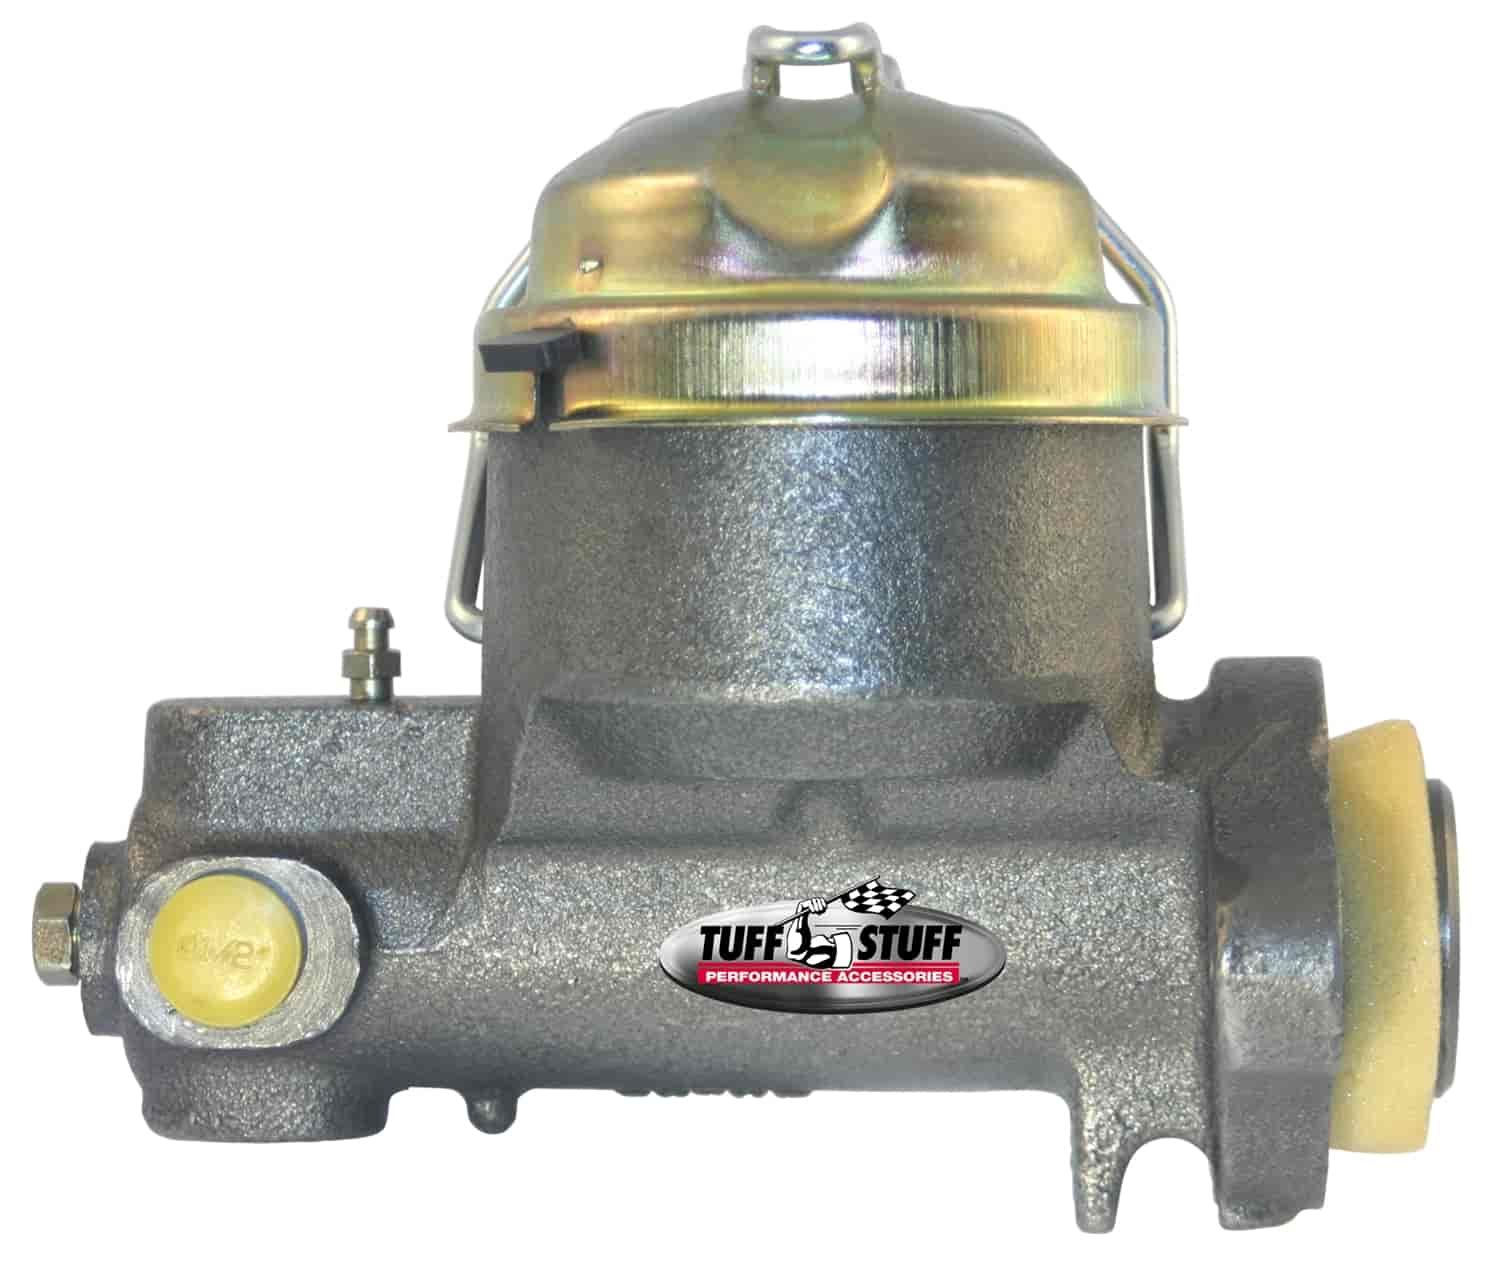 Tuff Stuff 2150NB - Tuff Stuff Master Cylinders & Brake Boosters